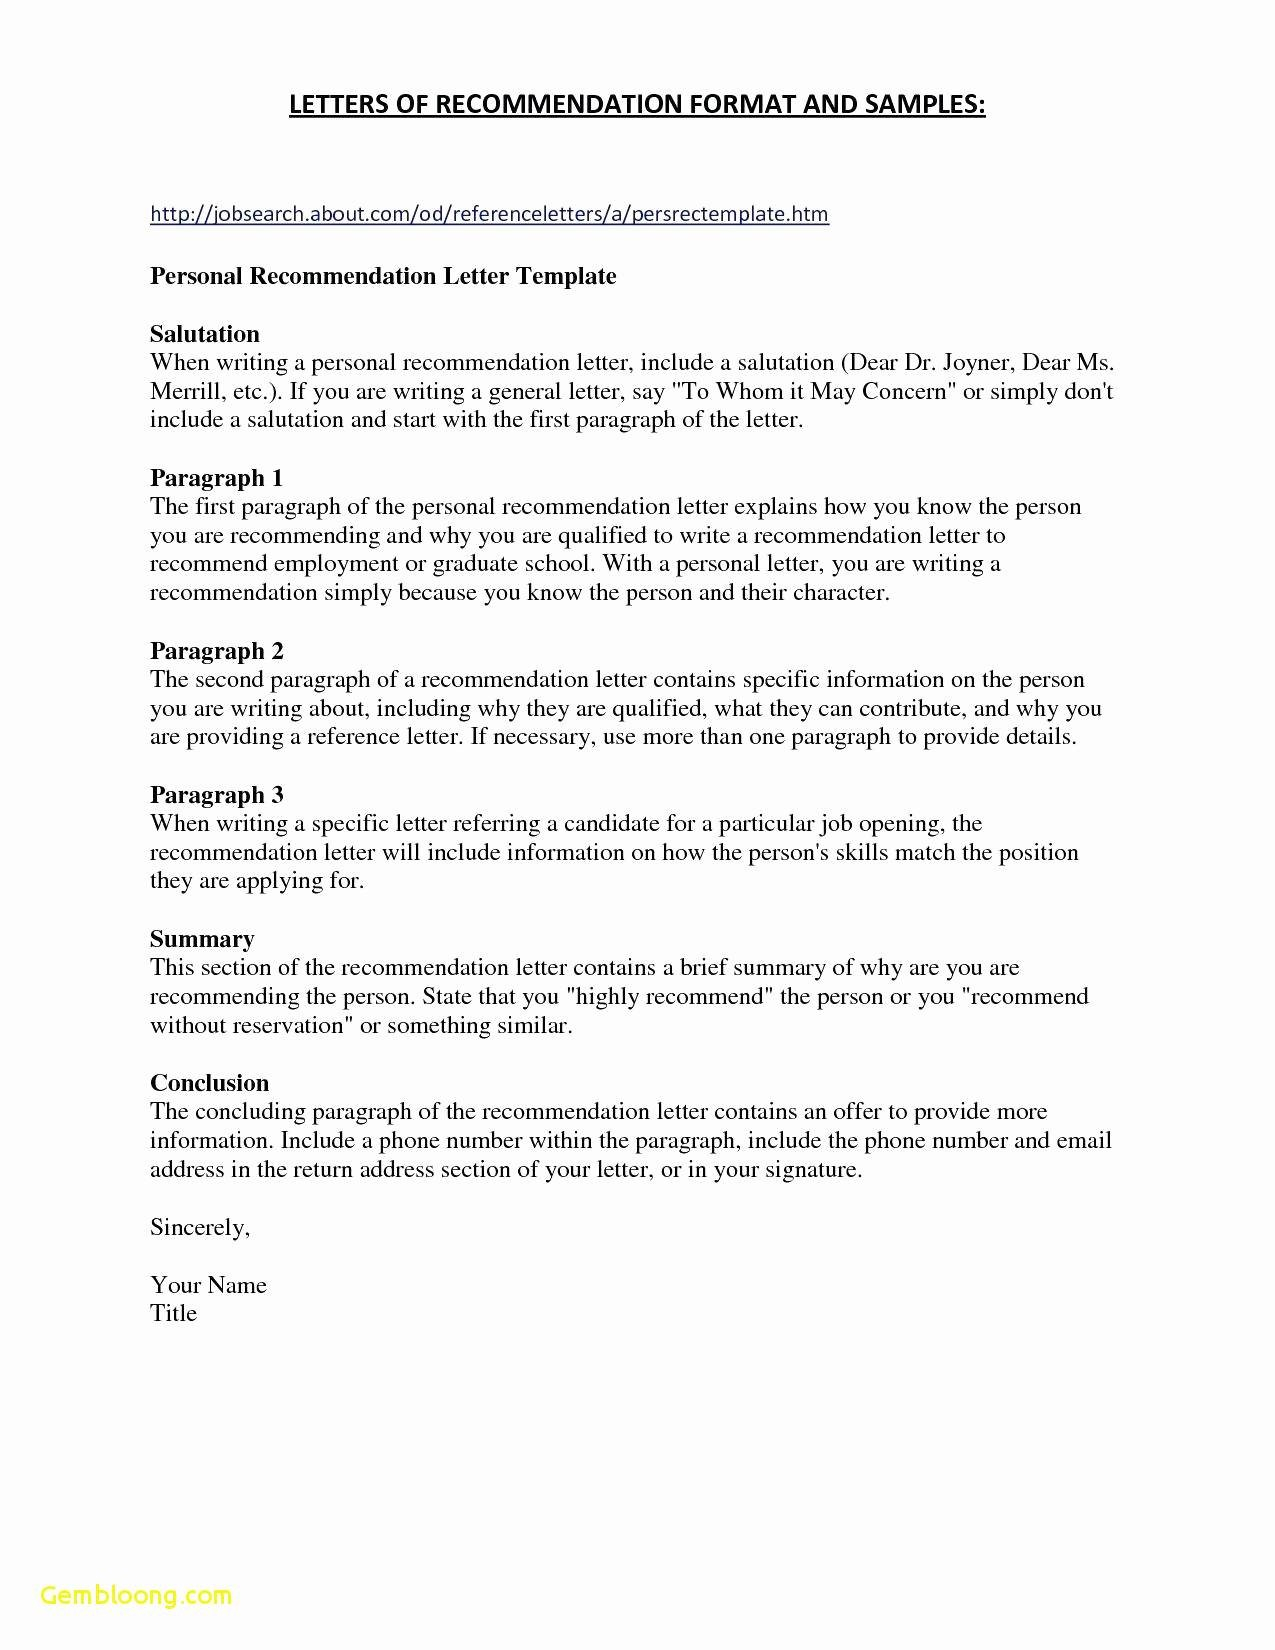 Business Contract Termination Letter Template - Ceo Employment Contract Template